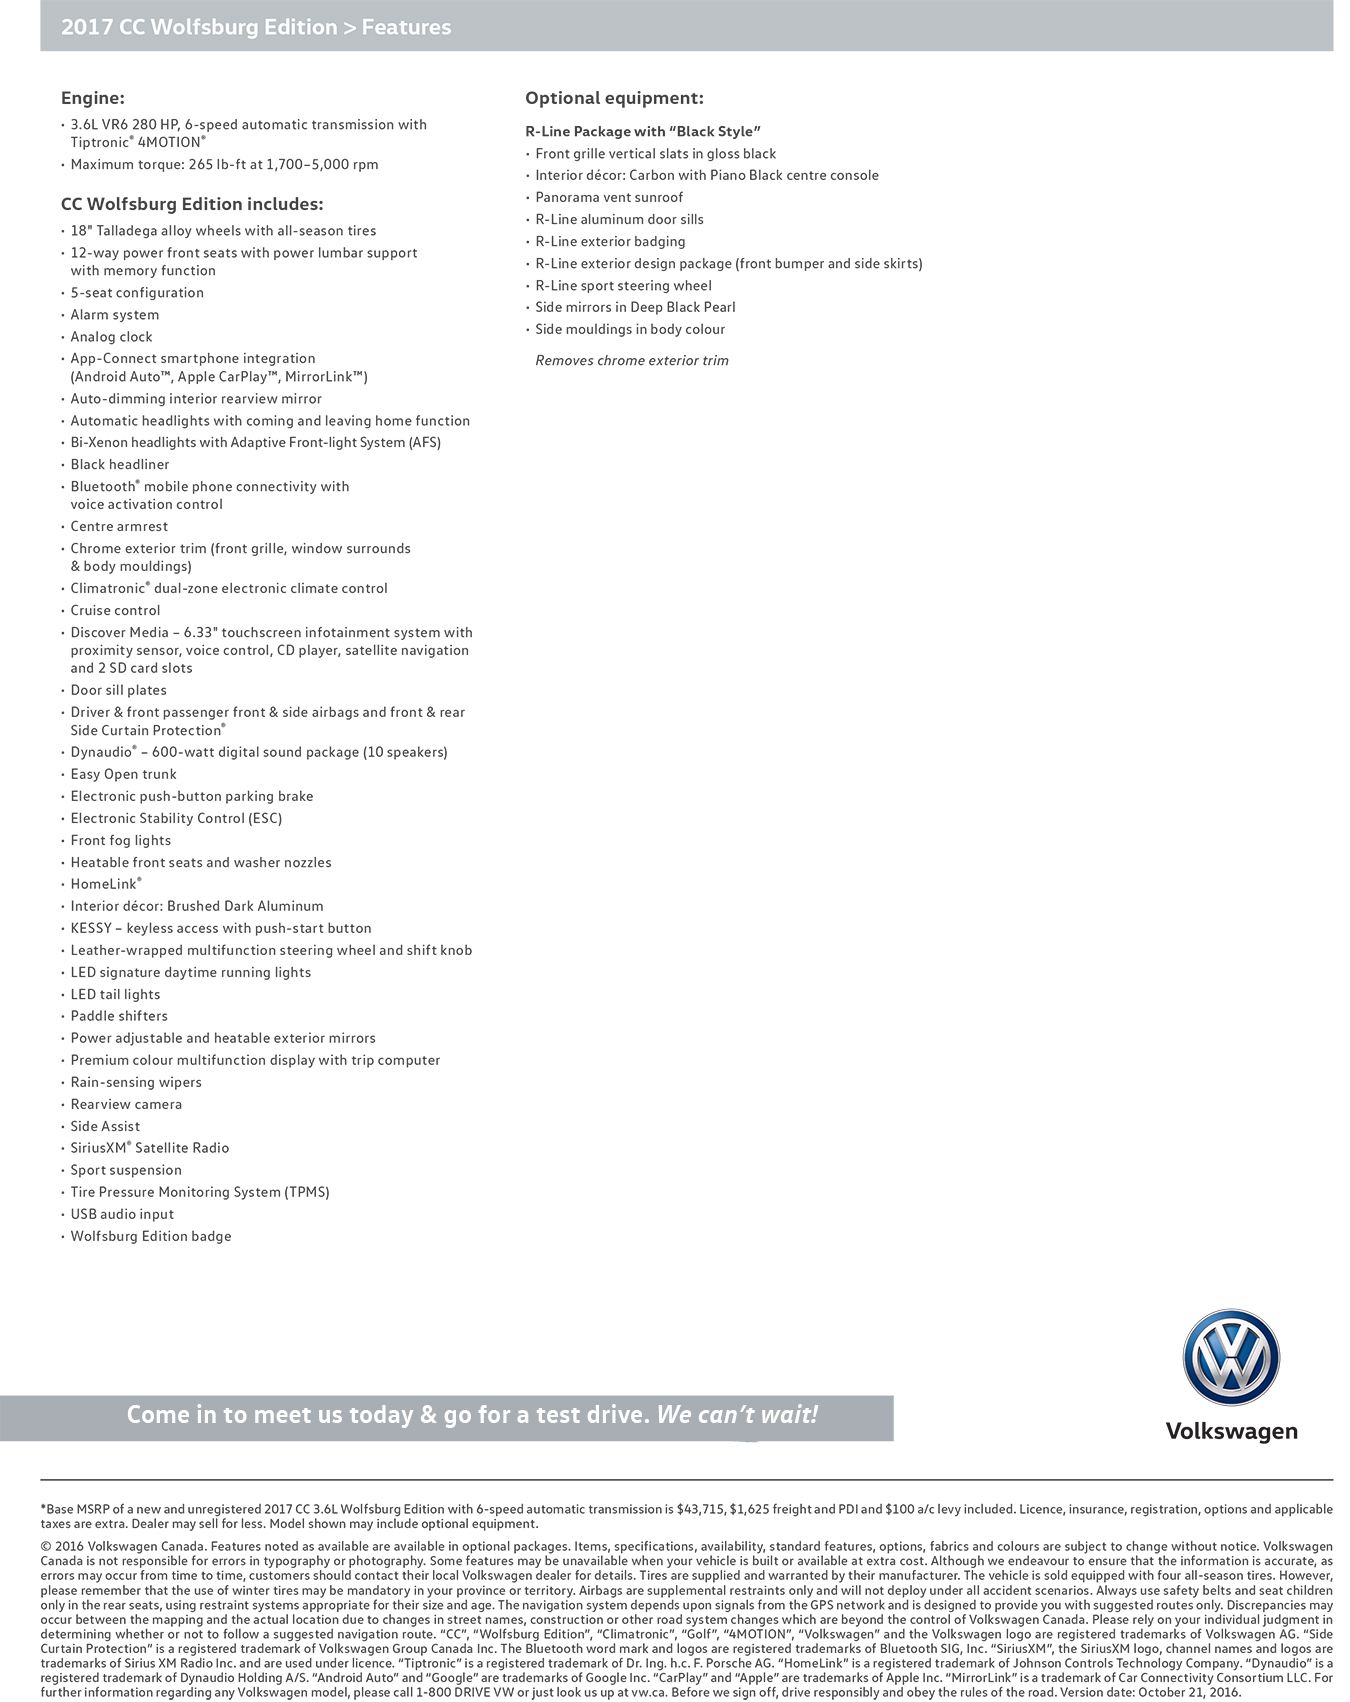 2017  CC Wolfsburg Edition features specifications